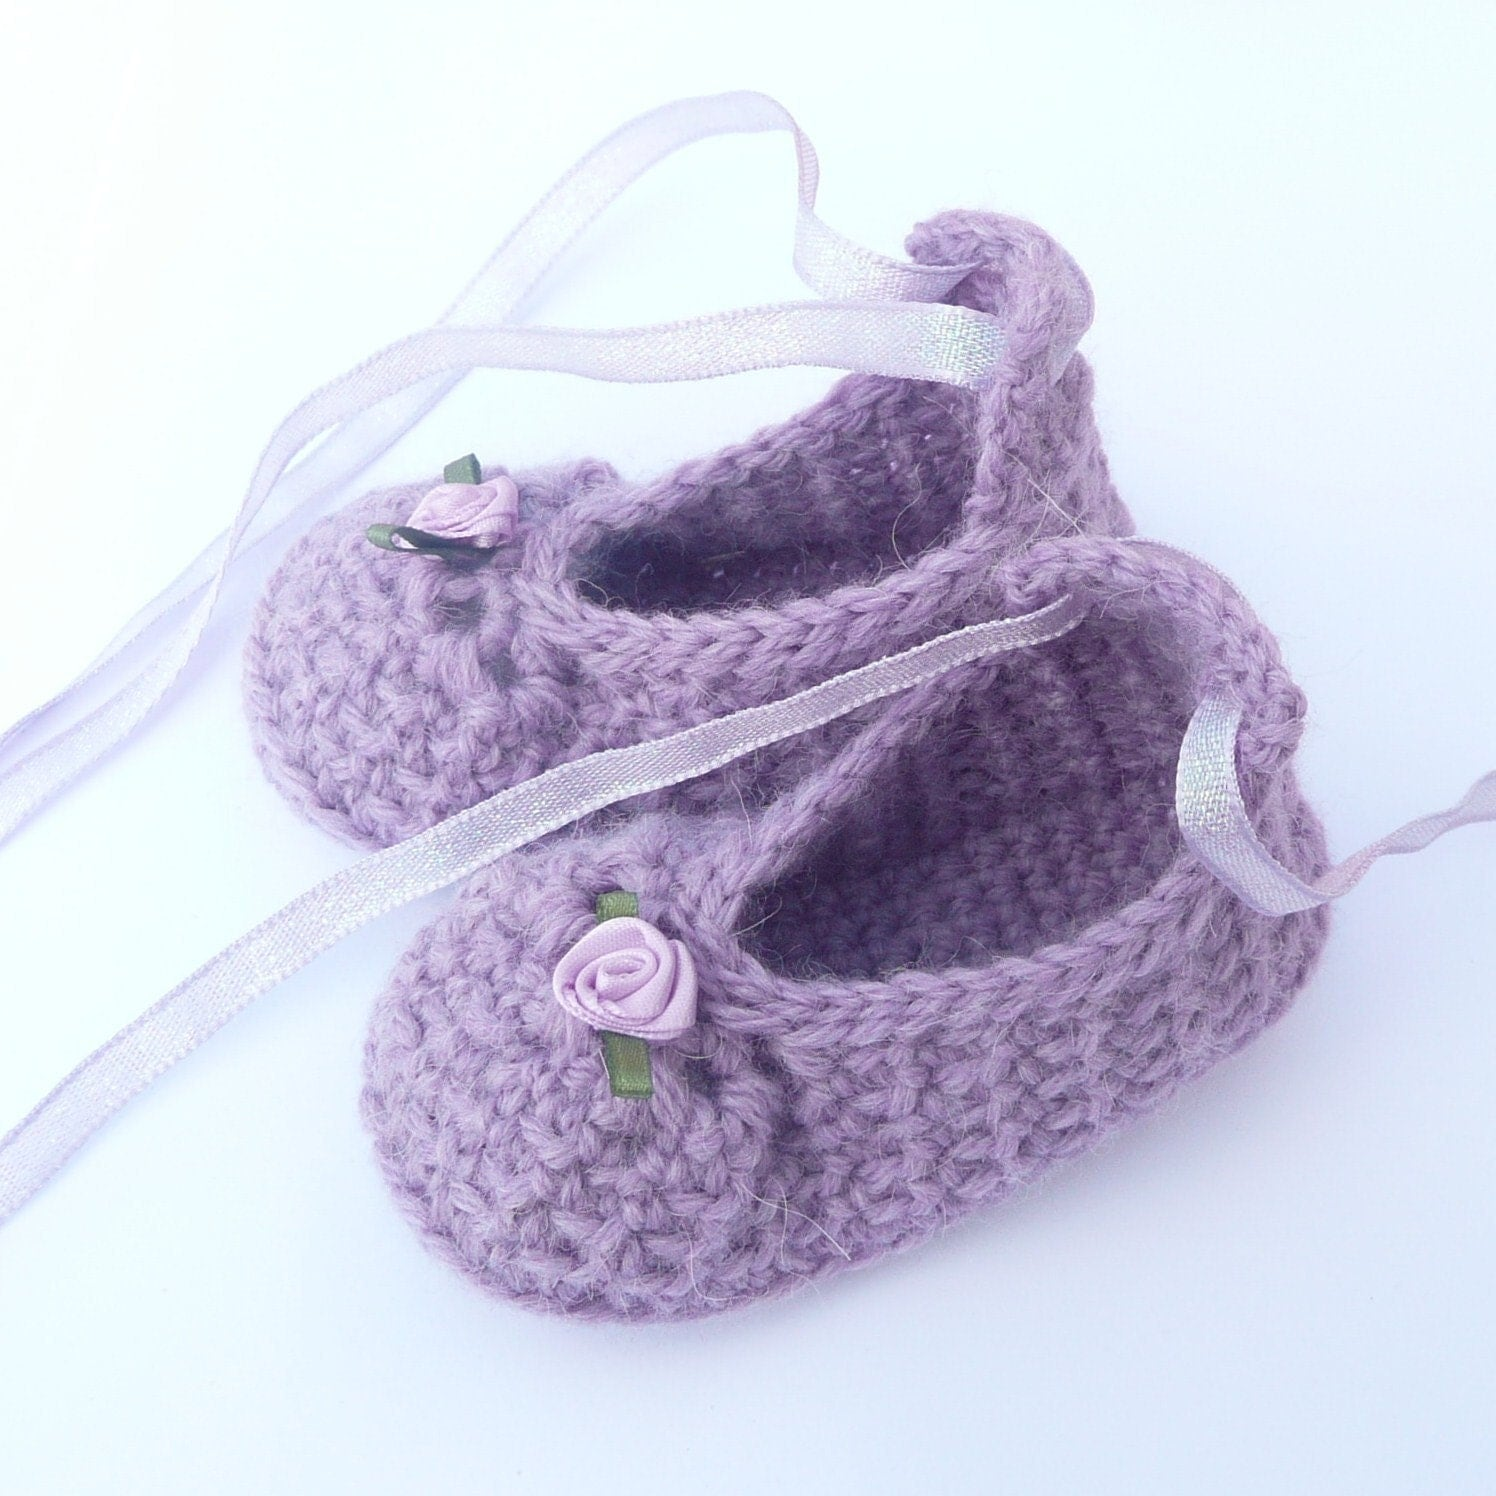 Baby Booties Dresses Christening Gown Crochet Patterns : BABY Booties CROCHET PATTERN Posh Purple Party by Keen2Crochet